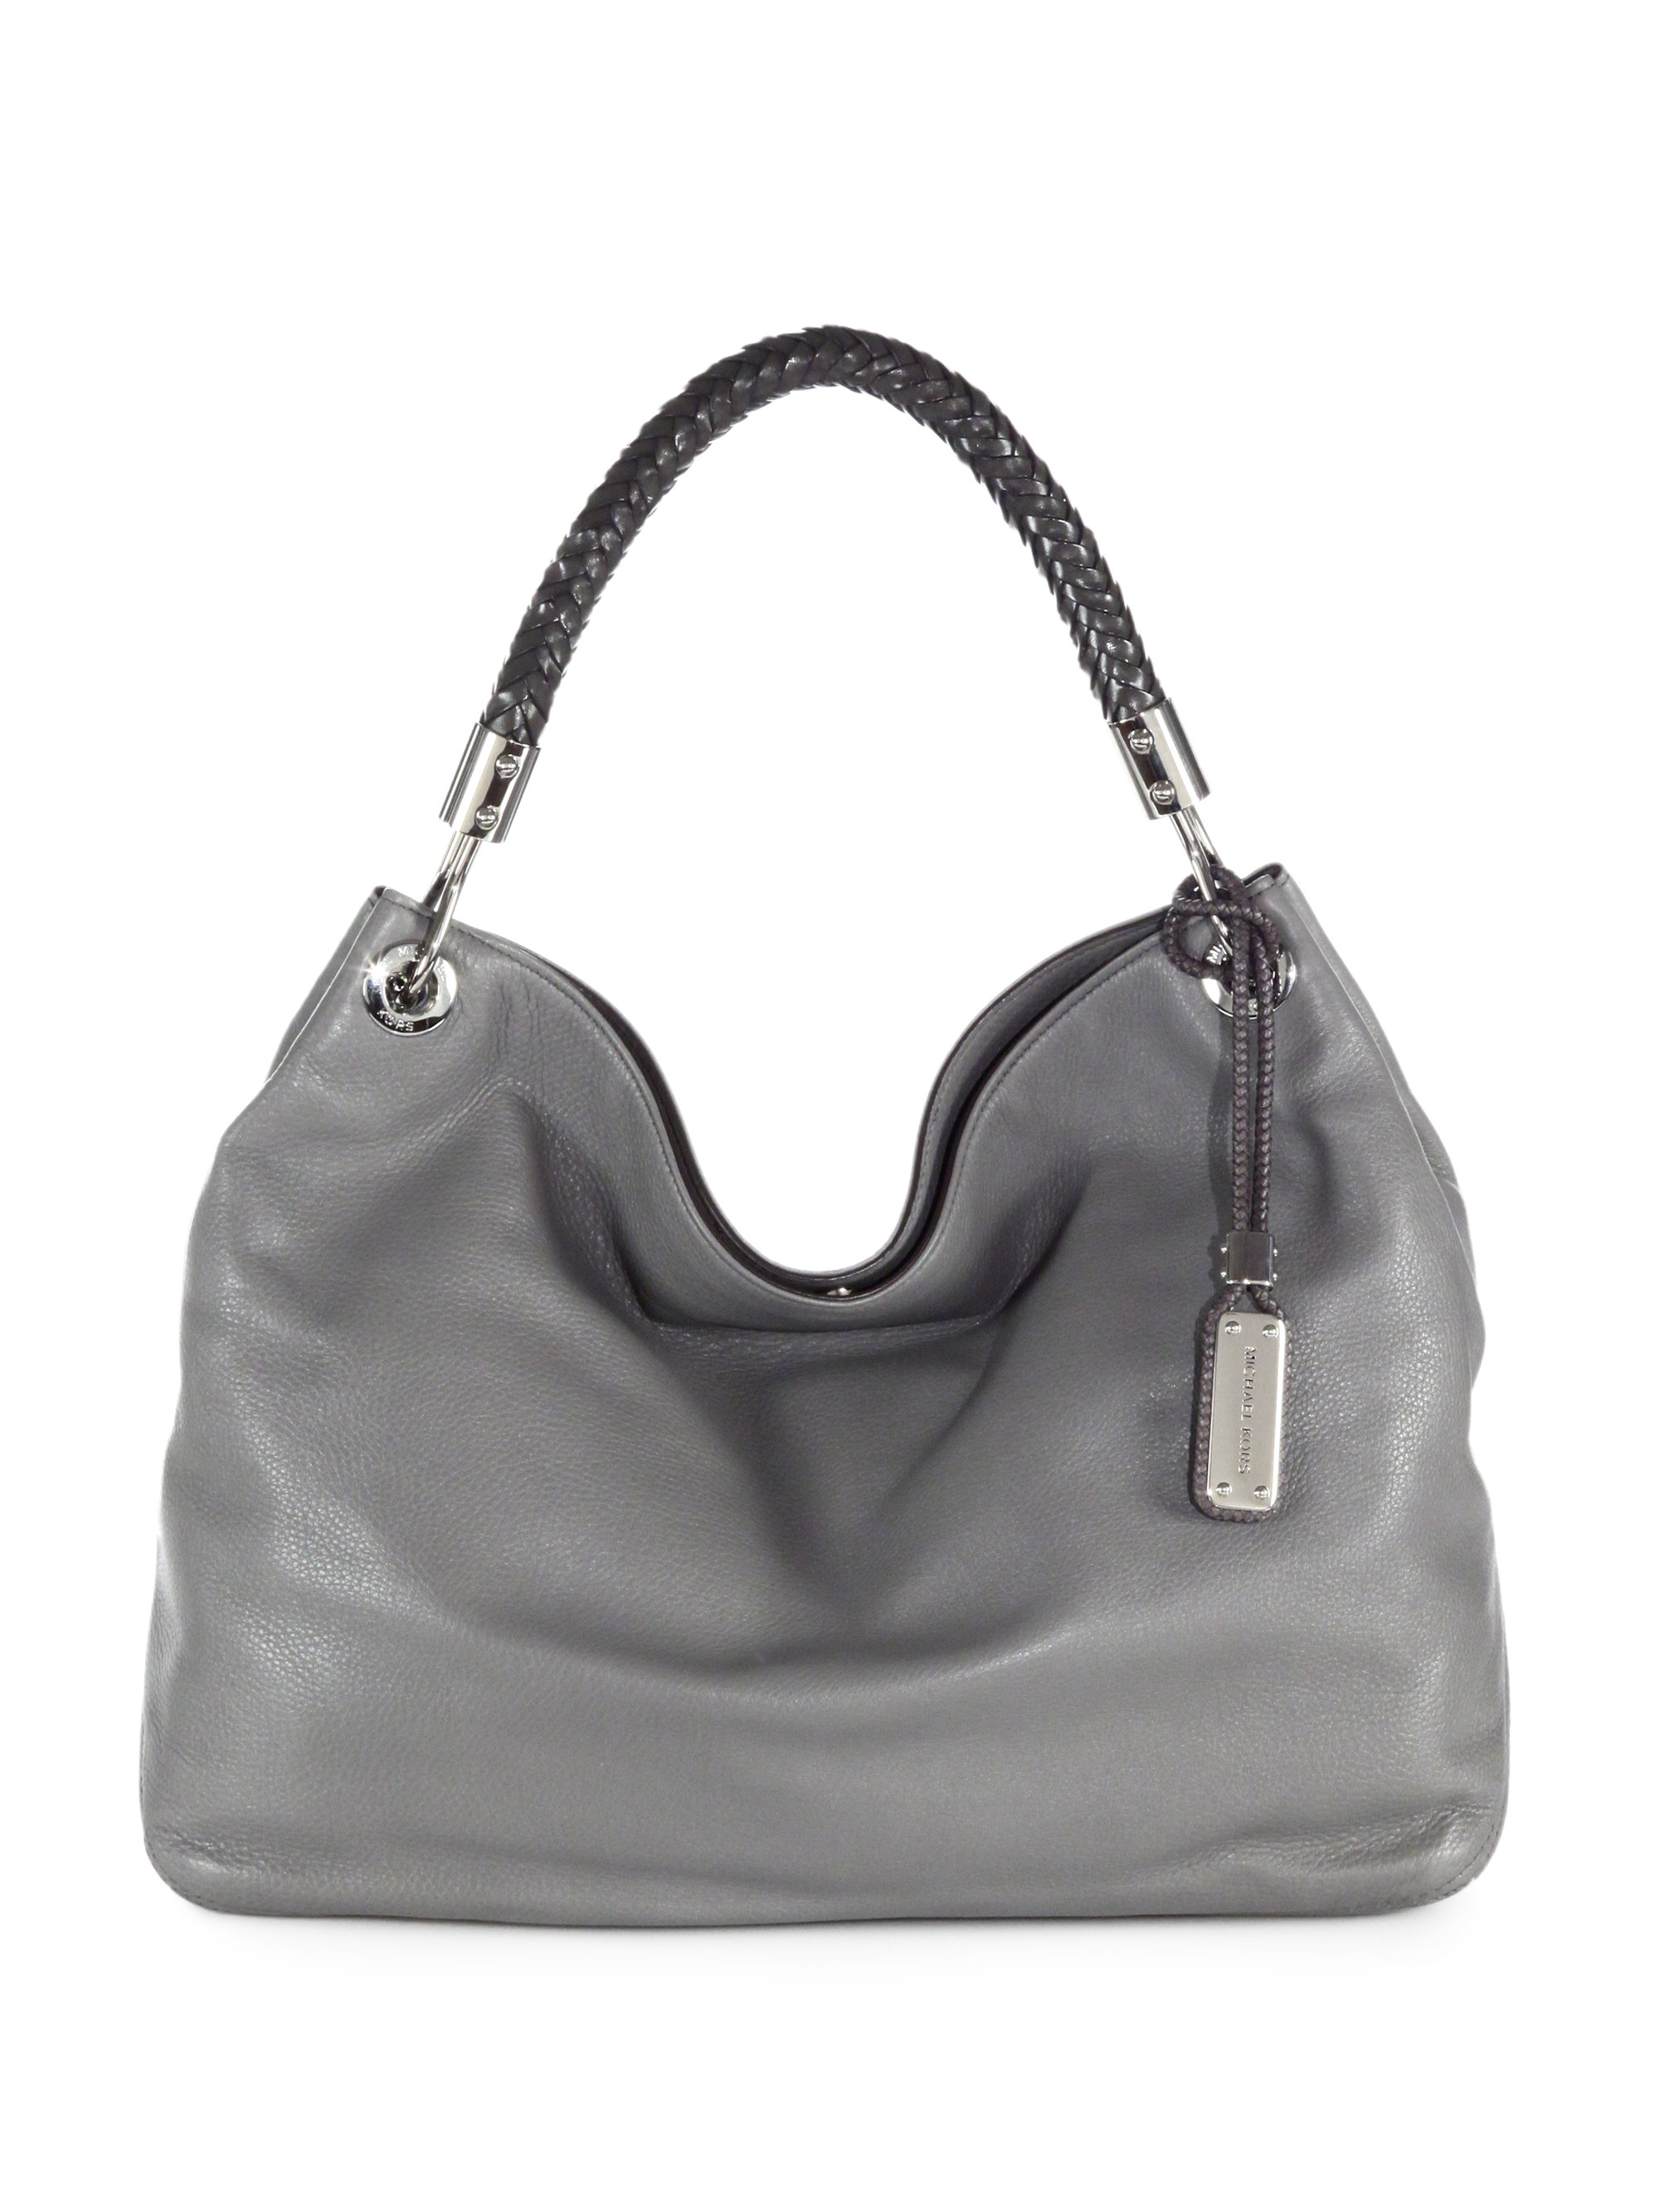 e112f4ab43d5 Michael Kors Skorpios Leather Shoulder Bag in Gray - Lyst